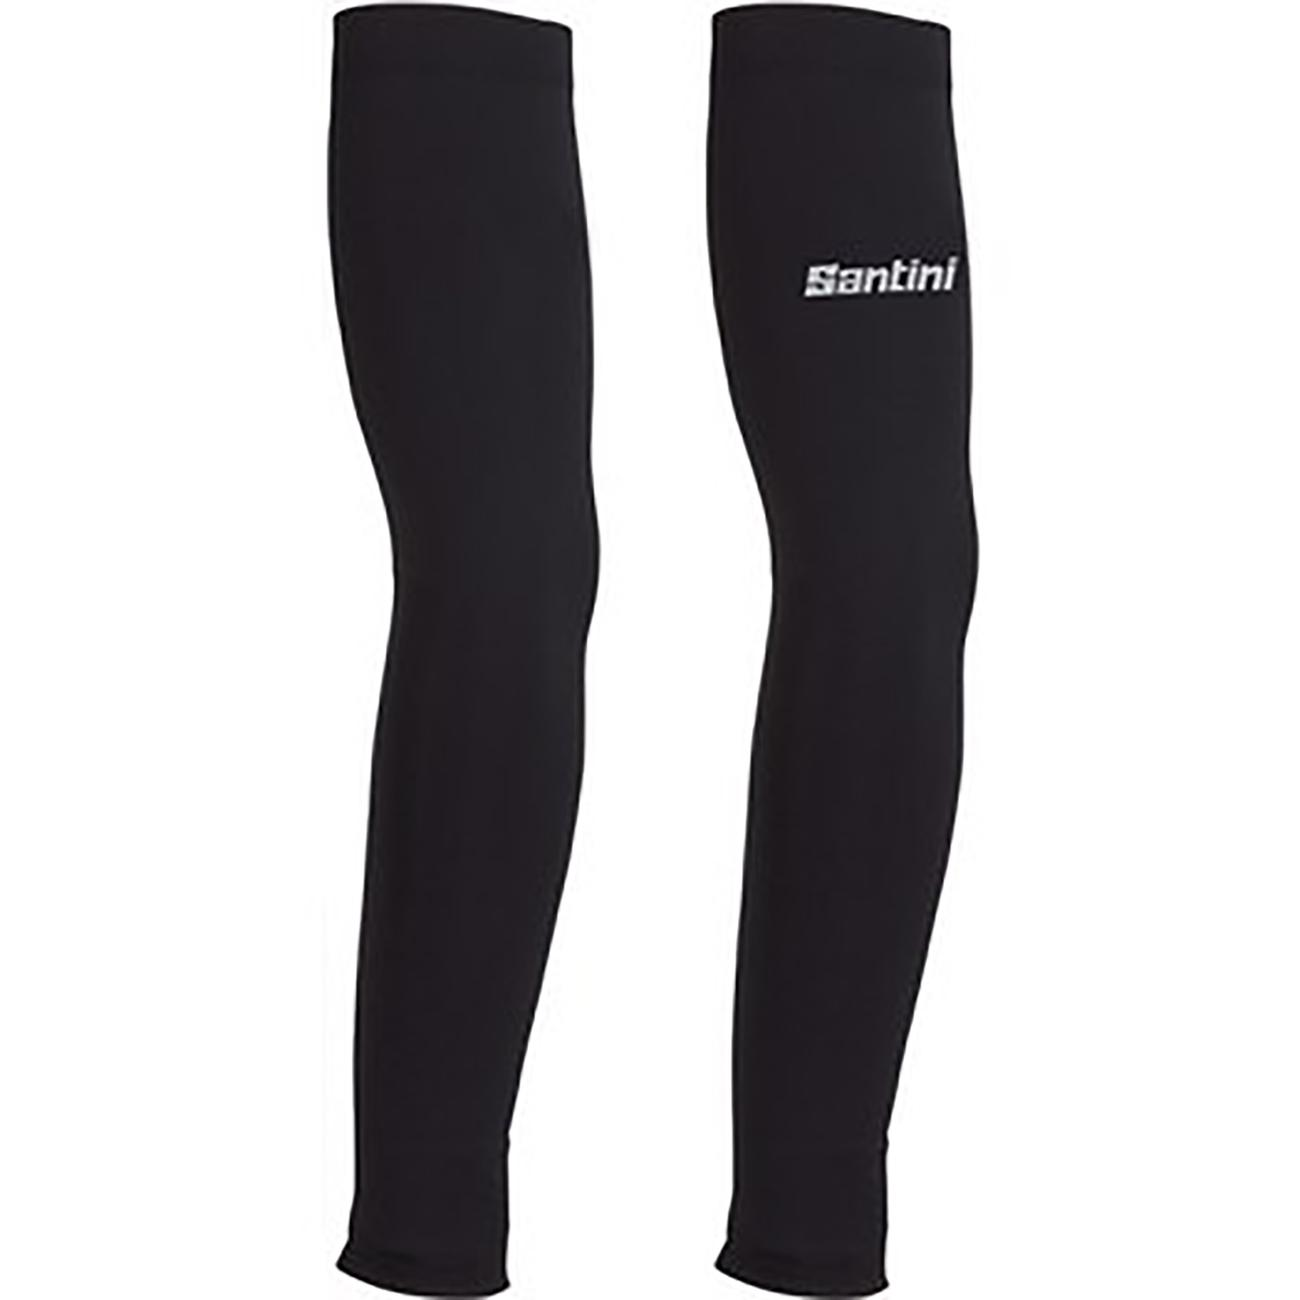 Santini Armwarmers Zwart Unisex - Cool 2.0 Lycra Arm Coolers Black